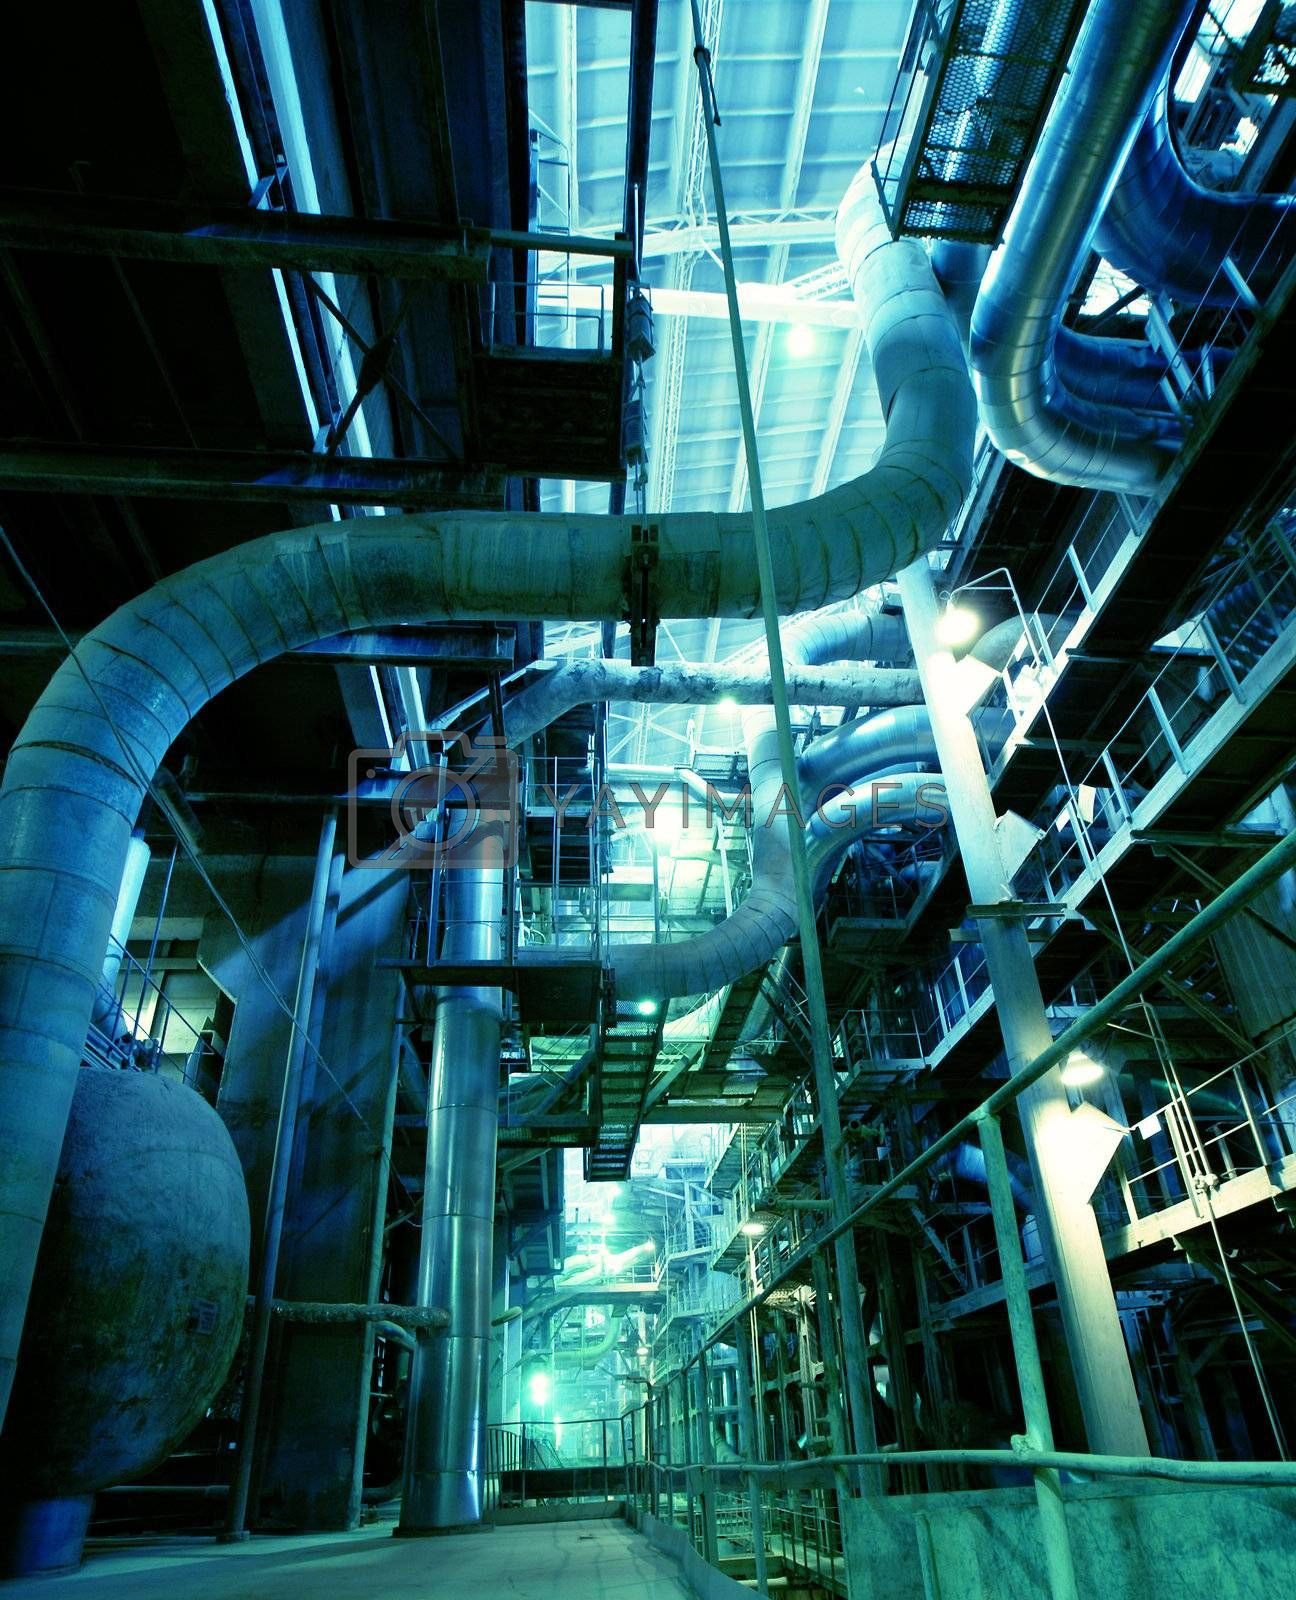 Industrial zone, Steel pipelines, valves and ladders by nostal6ie